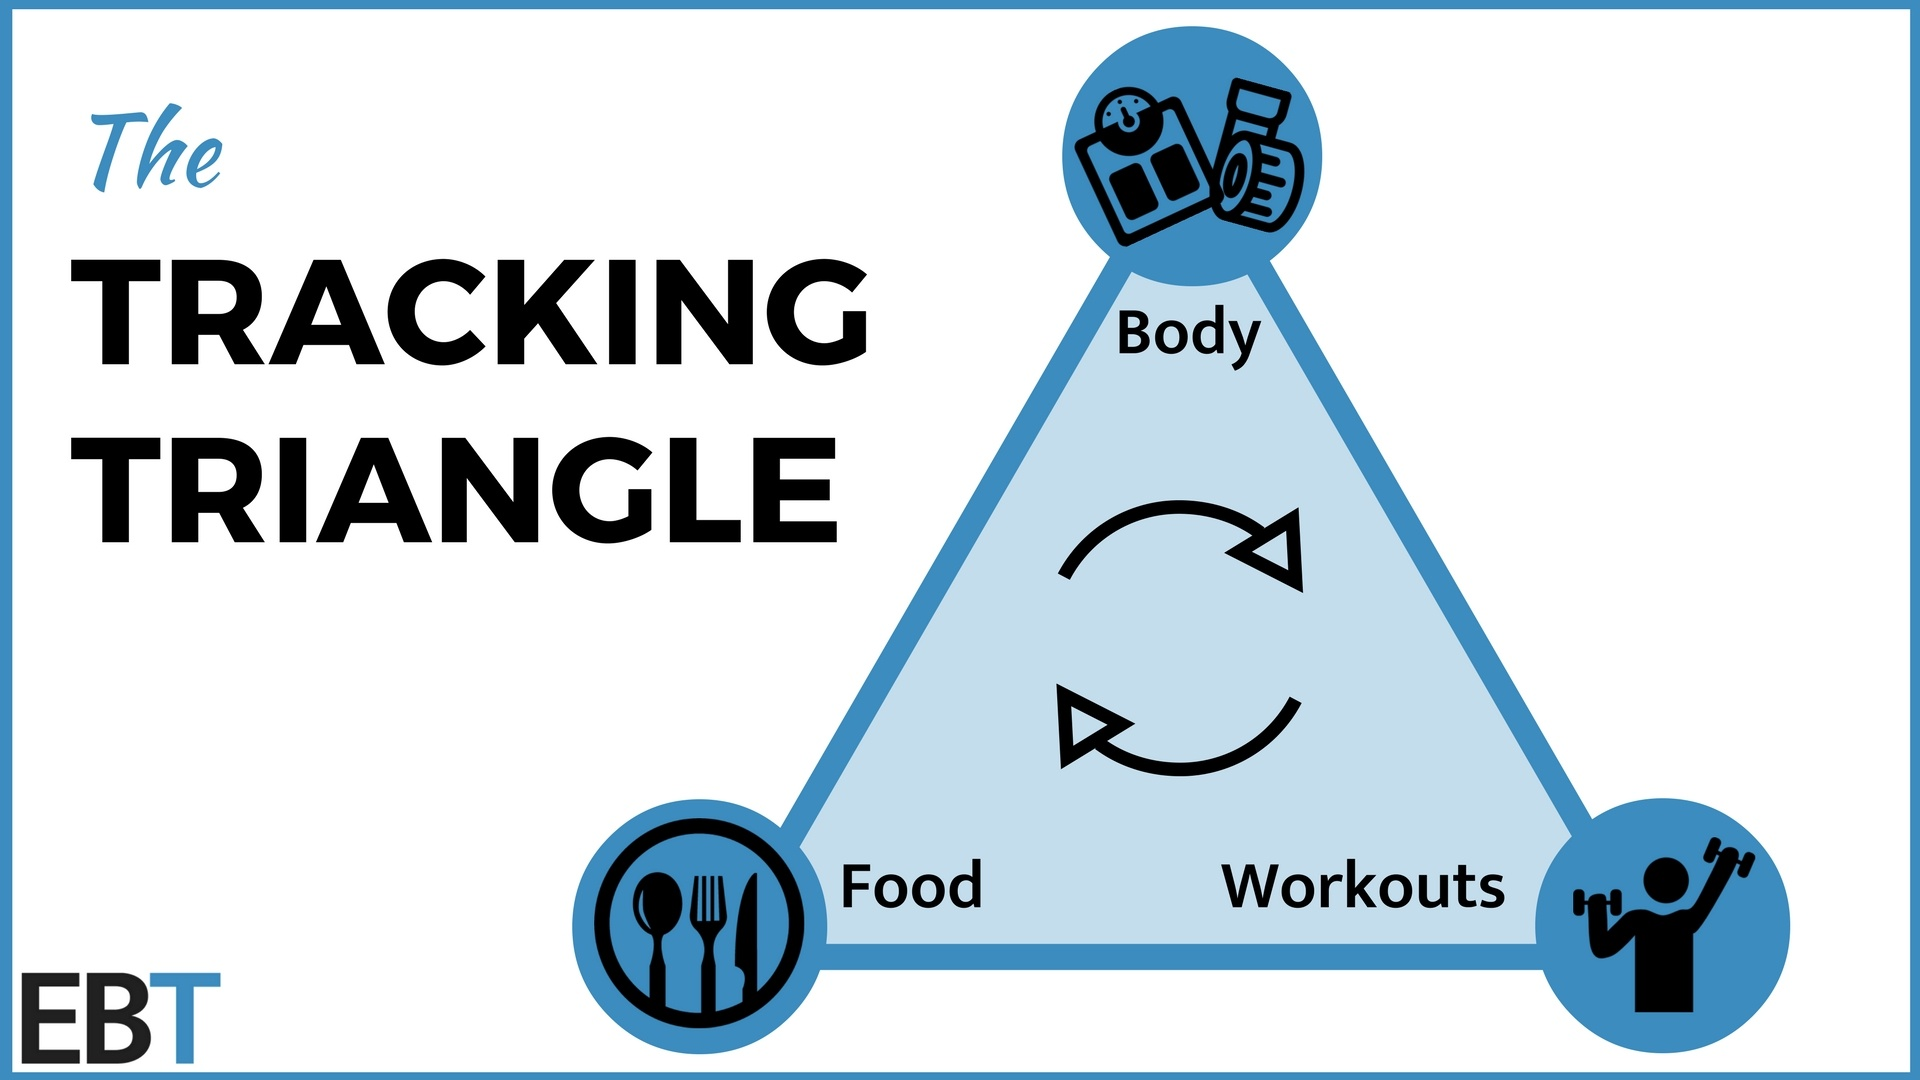 The Tracking Triangle